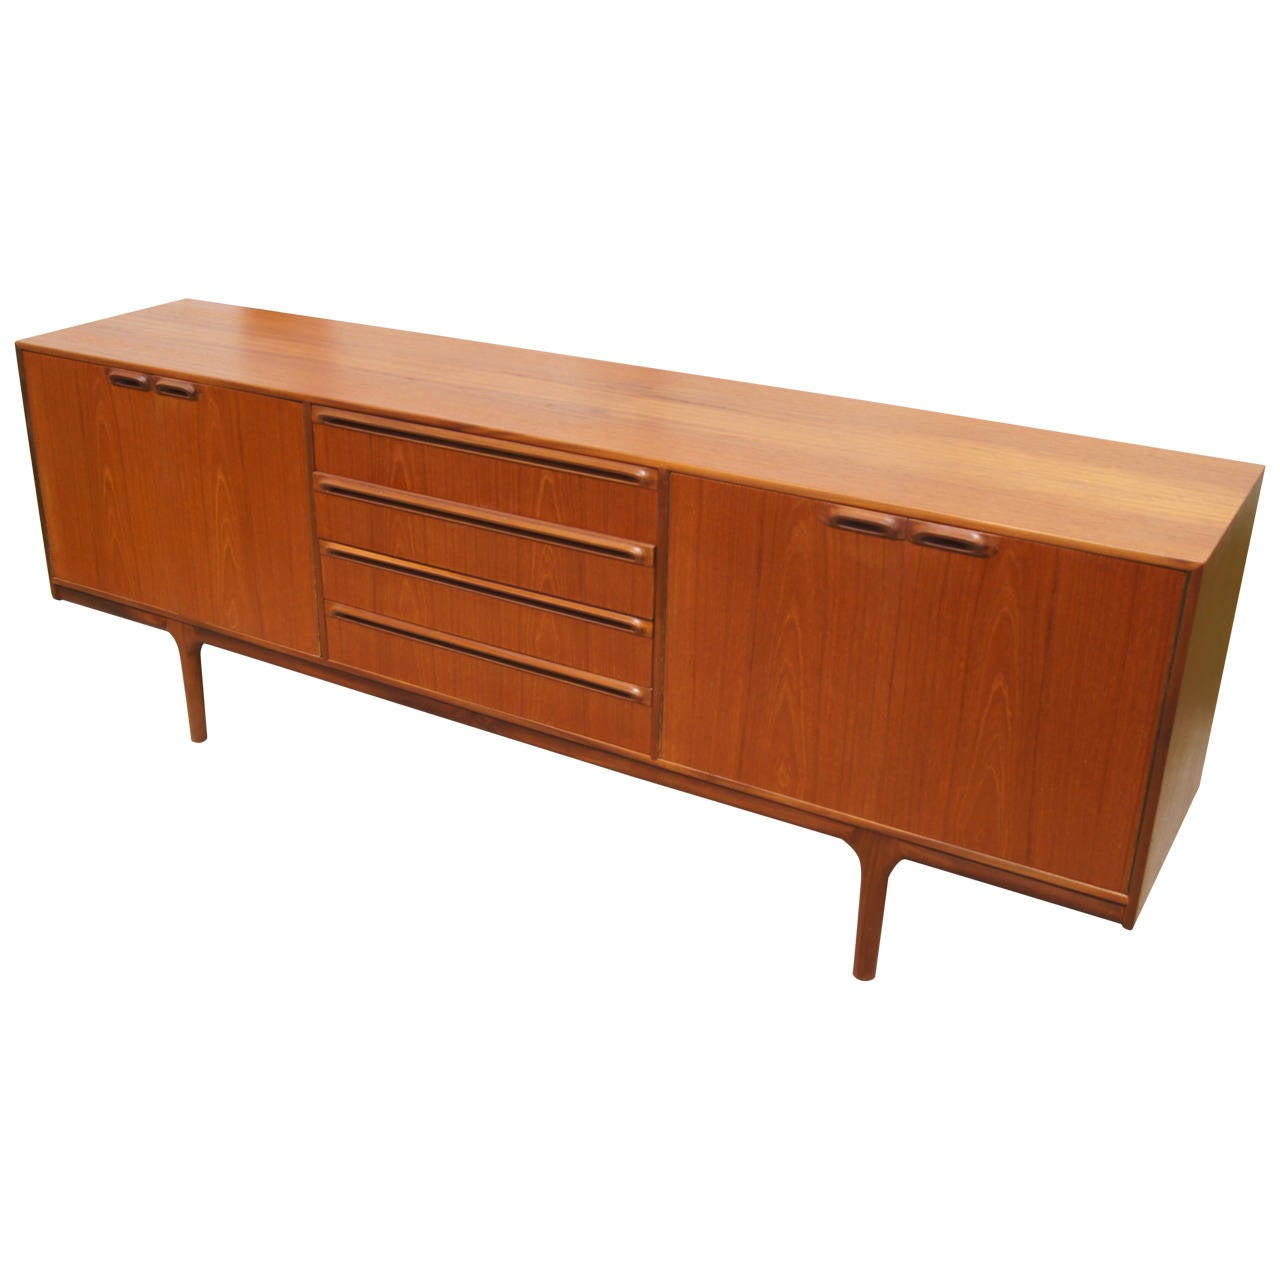 Teak Sideboard/Dry Bar by A. H. McIntosh and Co. at 1stdibs